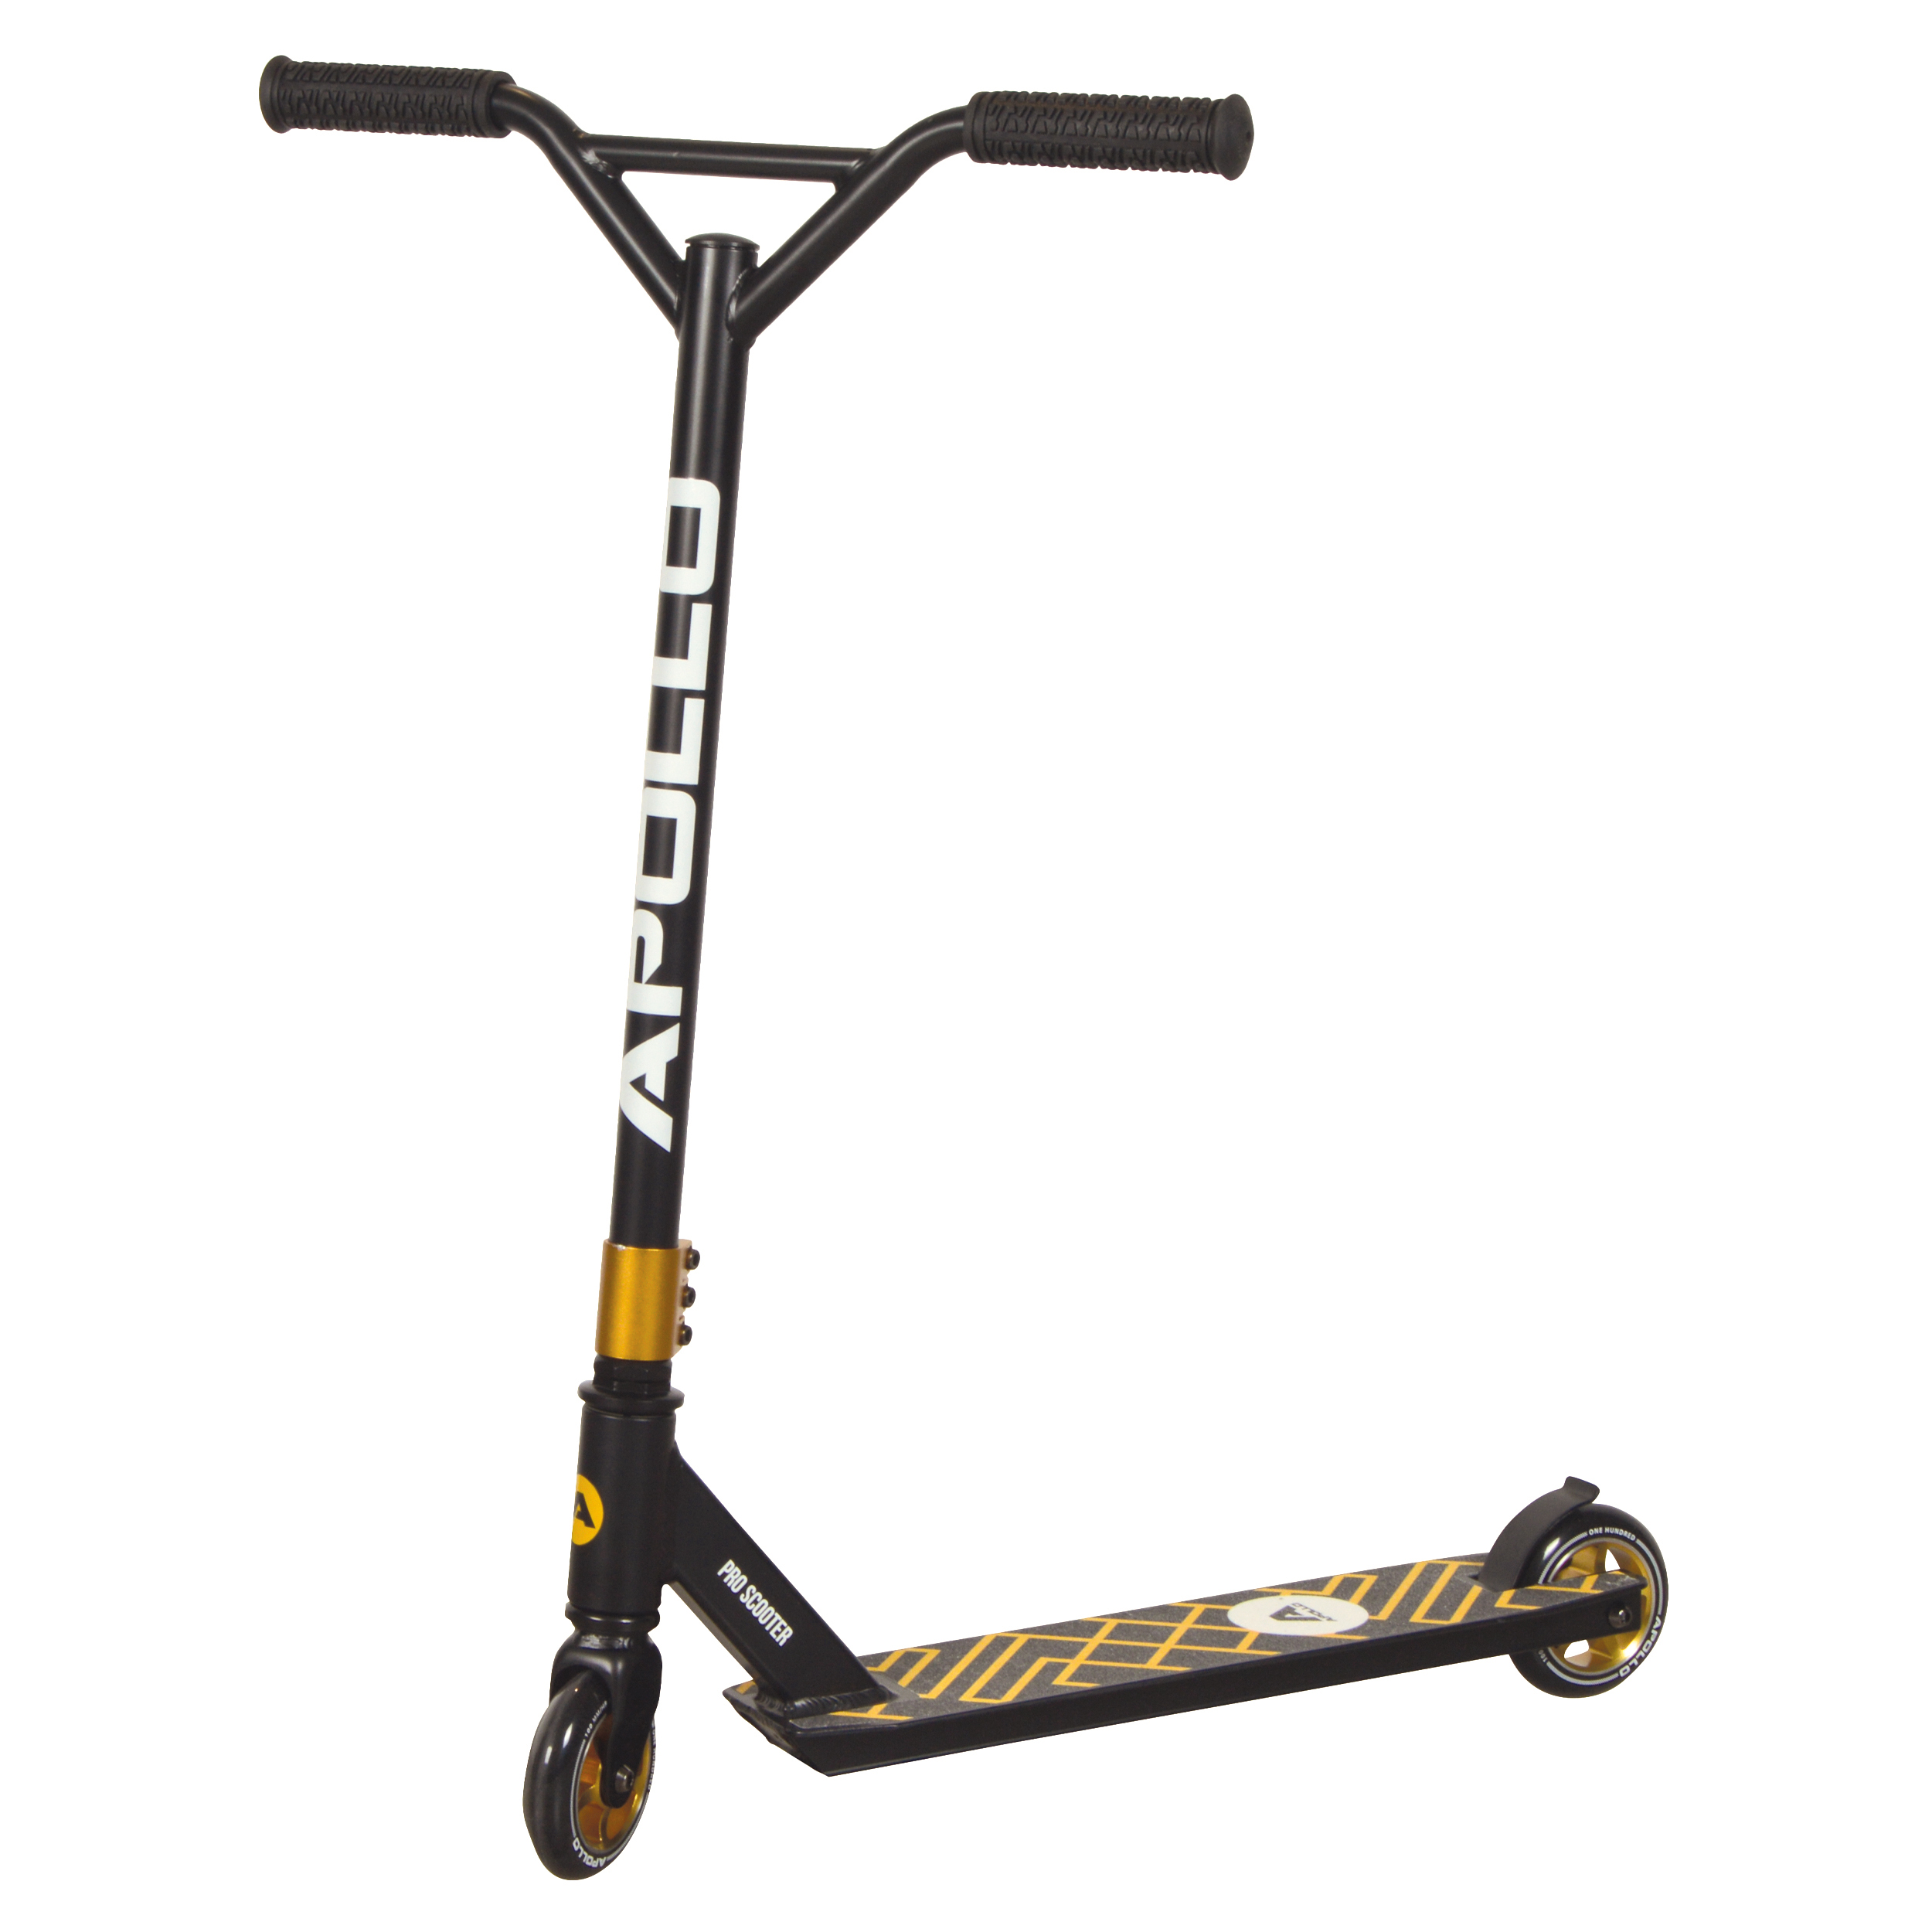 Apollo Stunt Scooter - Genius Pro 4.0 - Schwarz/Gold